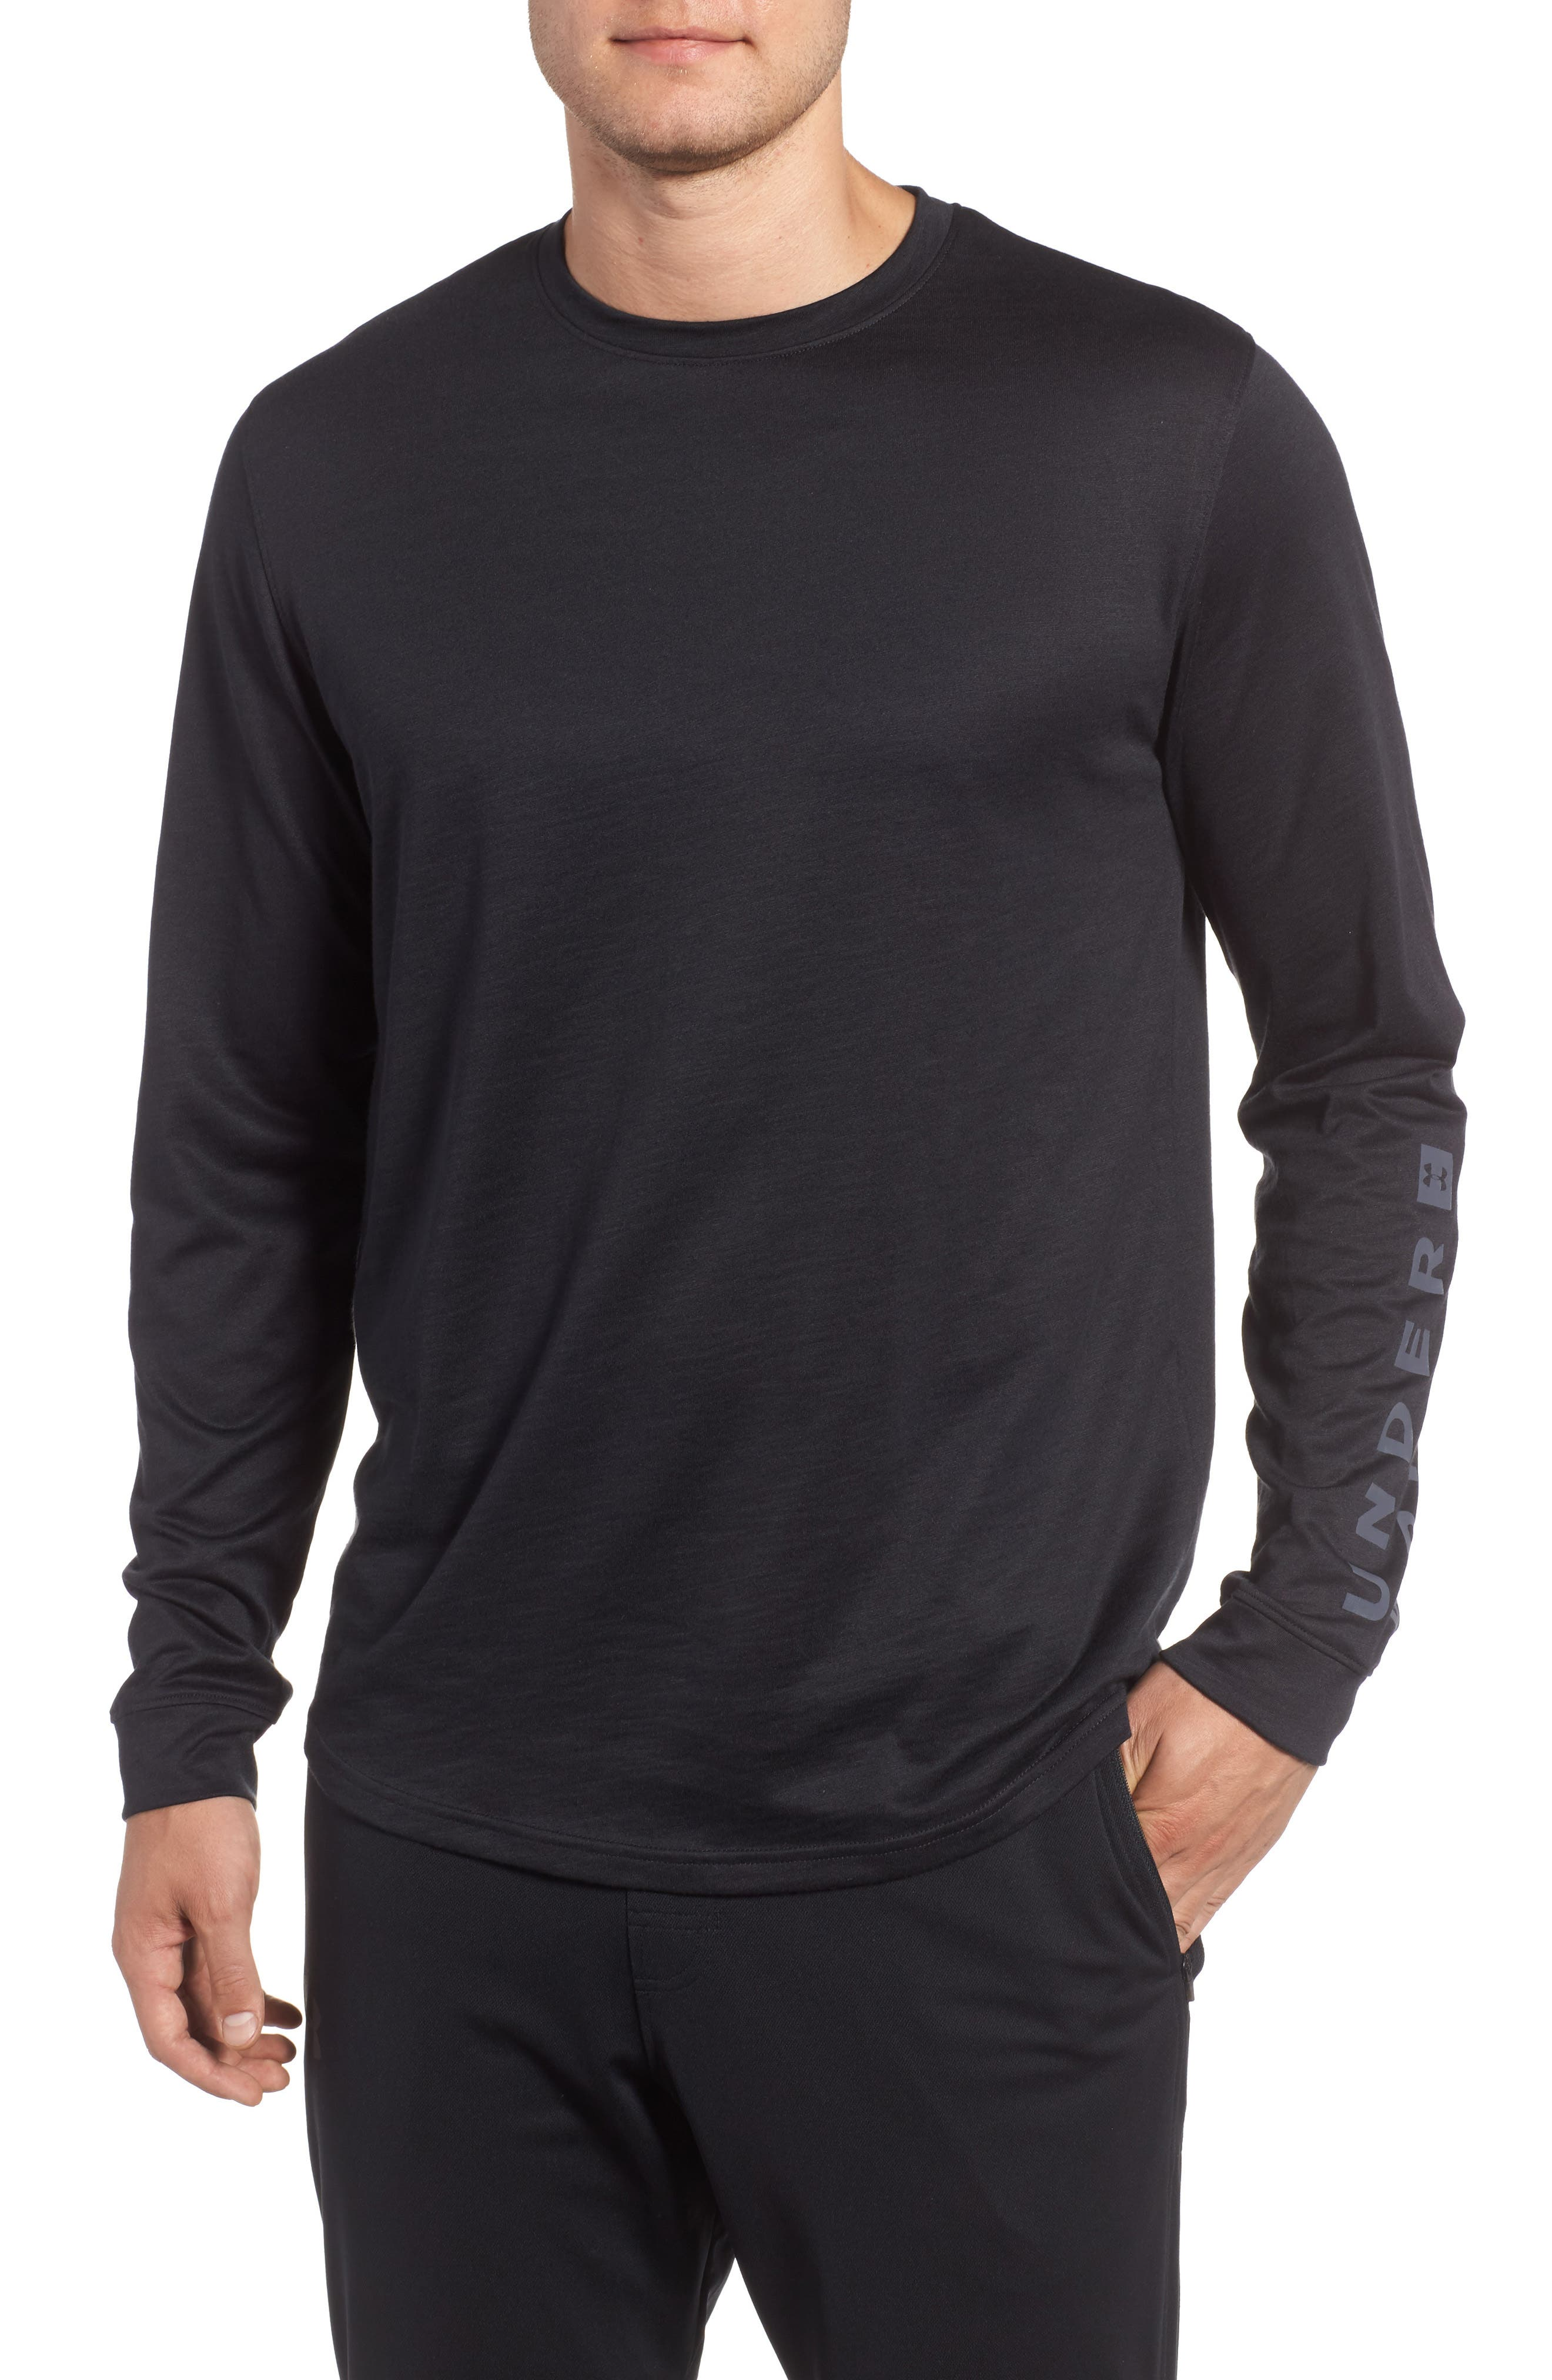 Main Image - Under Armour Sportstyle Long Sleeve Graphic T-Shirt